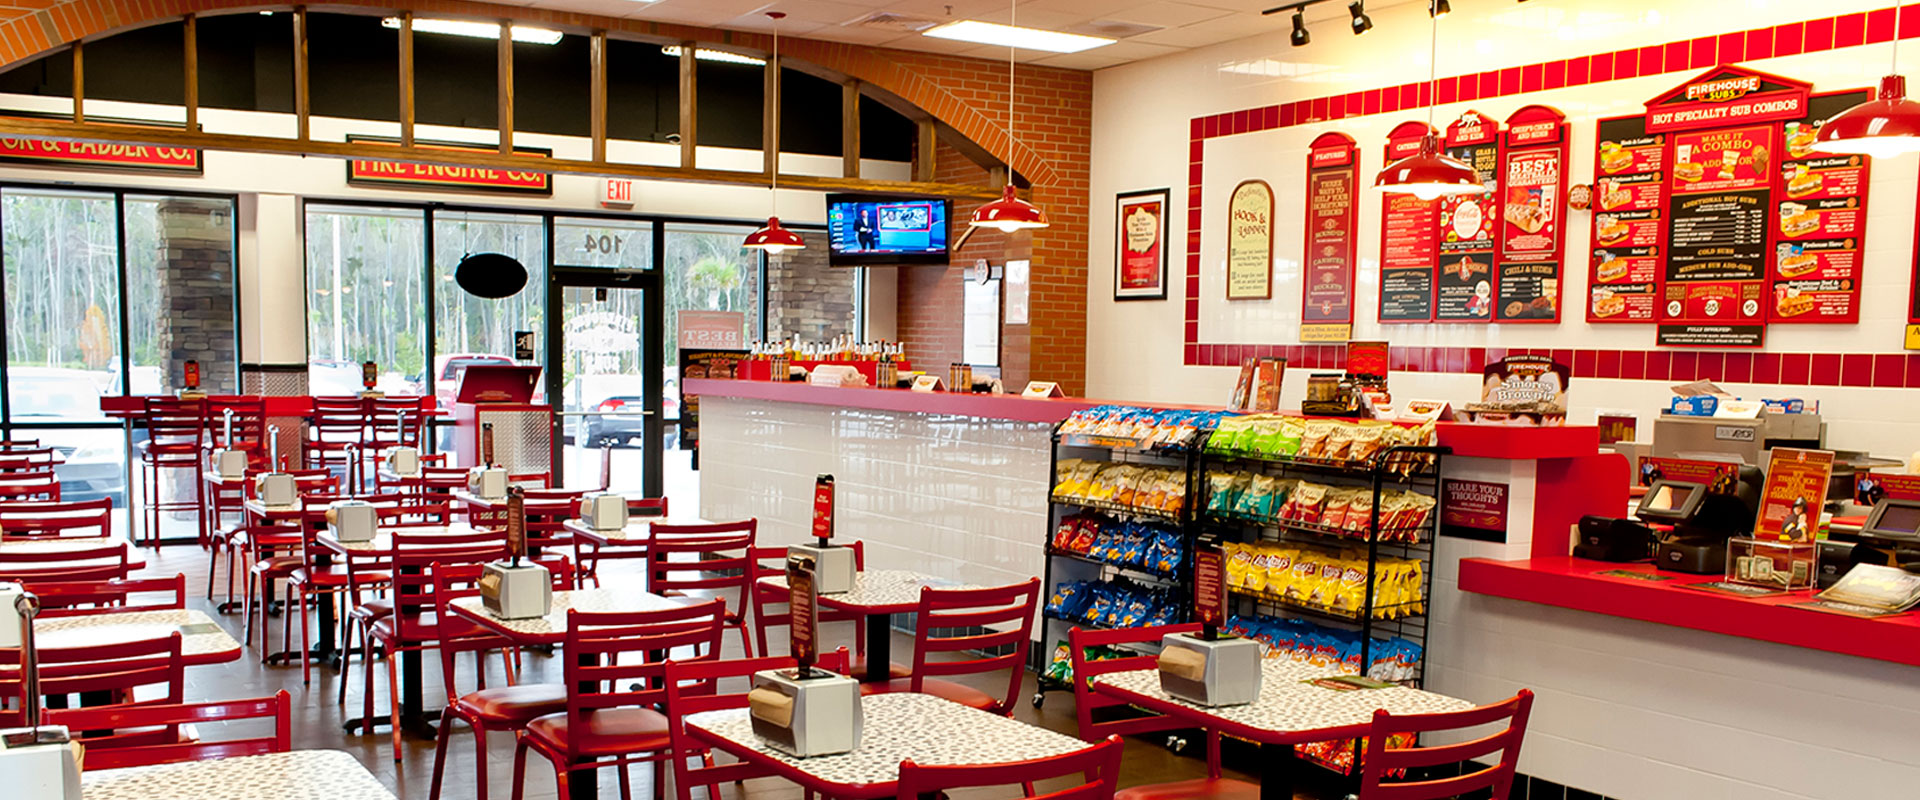 Firehouse-subs-customer-analytics-sales-strategy